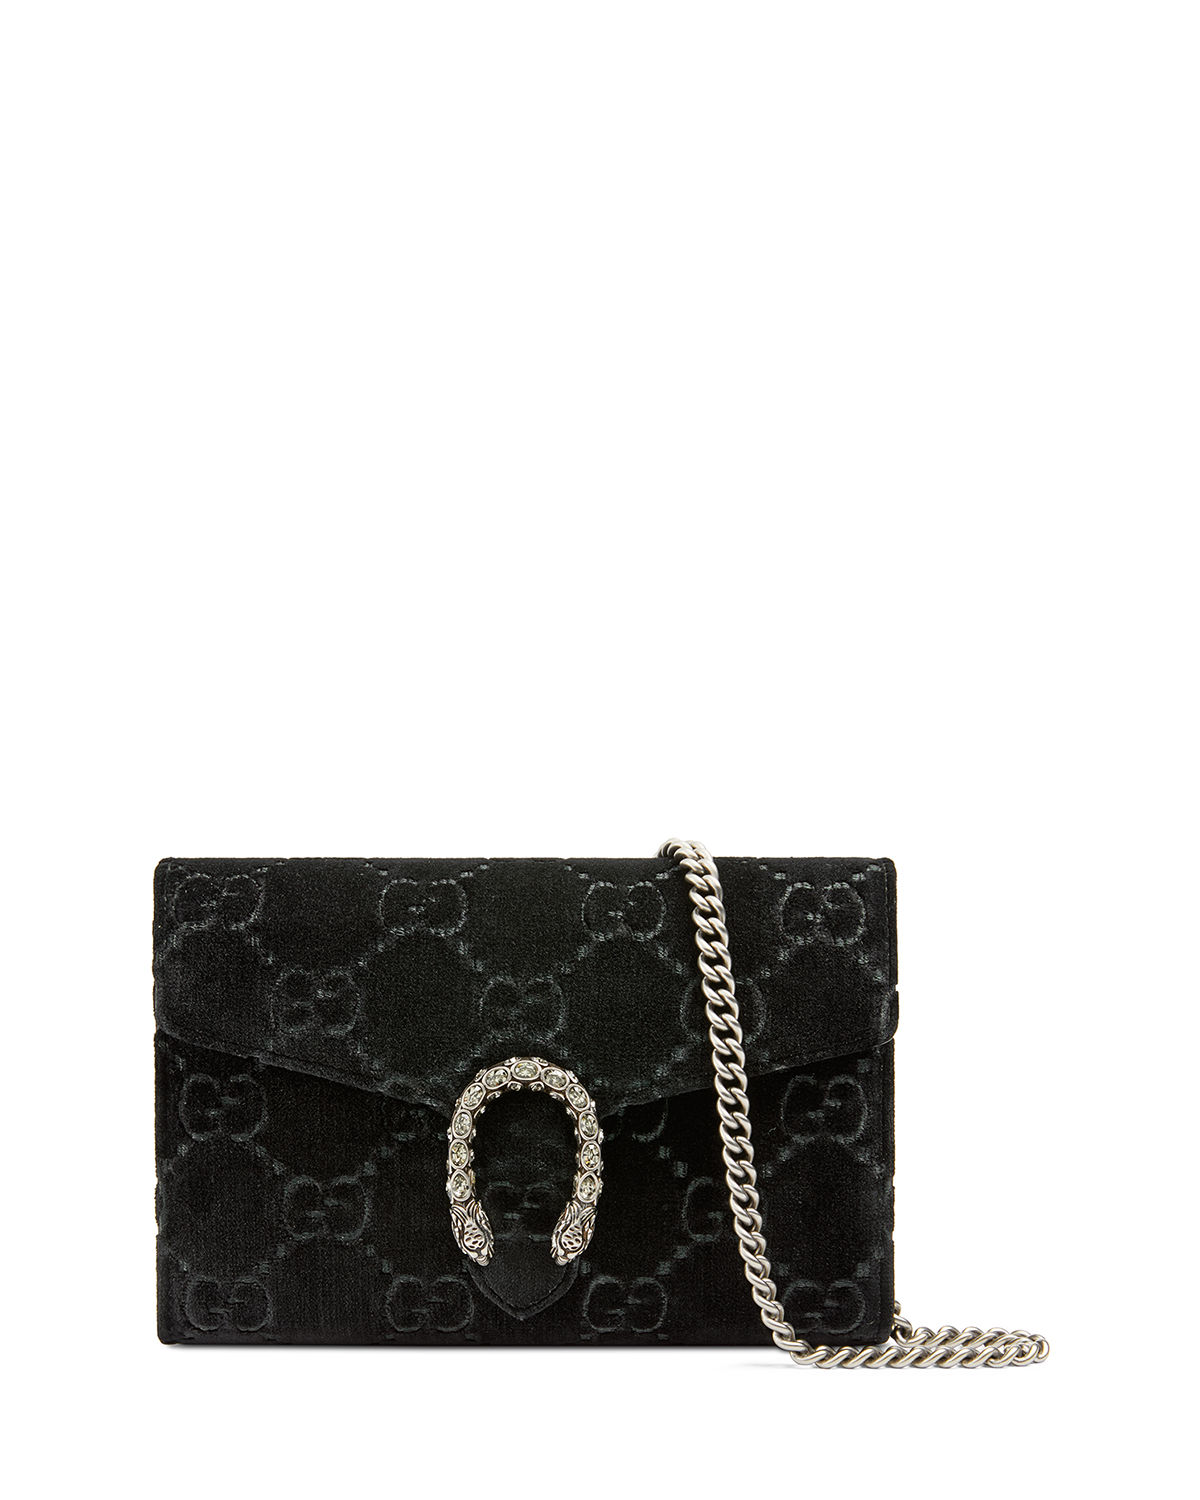 Gucci Dionysus Velvet GG Supreme Wallet On Chain  893861ea8ebe3